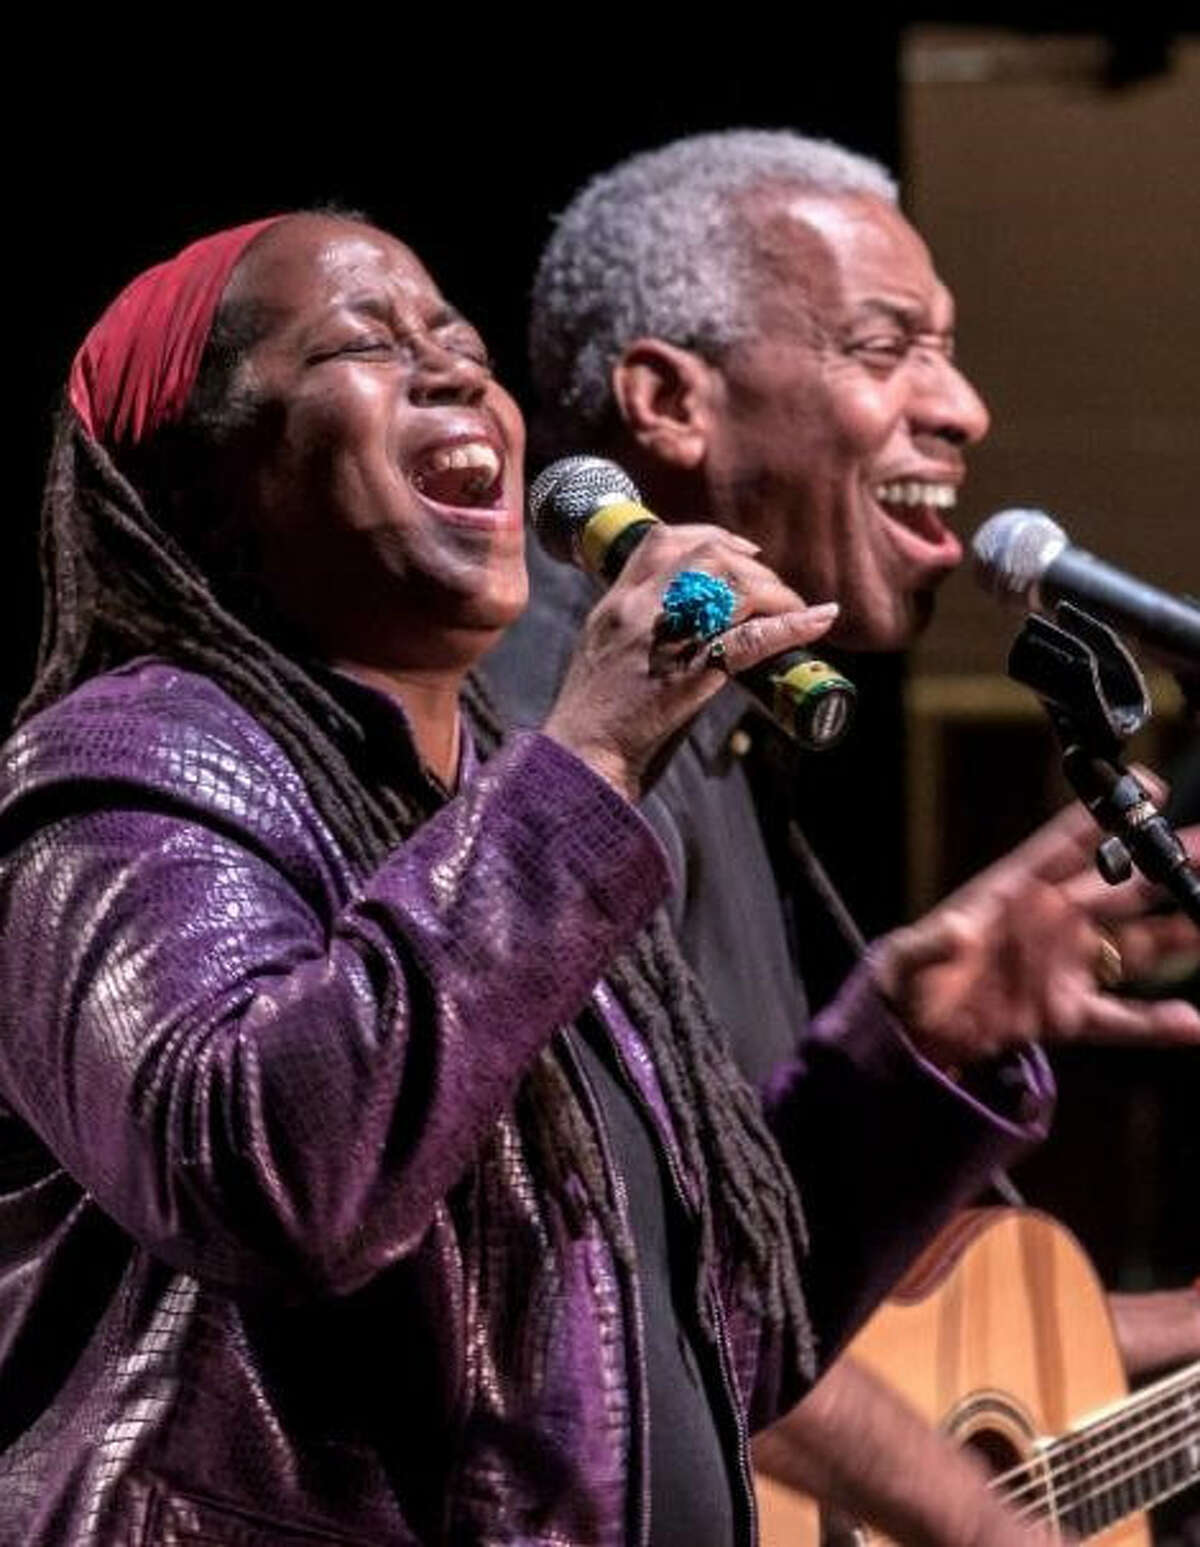 Reggie Harris, shown here is with his wife, Kim, is releasing an album this Saturday.